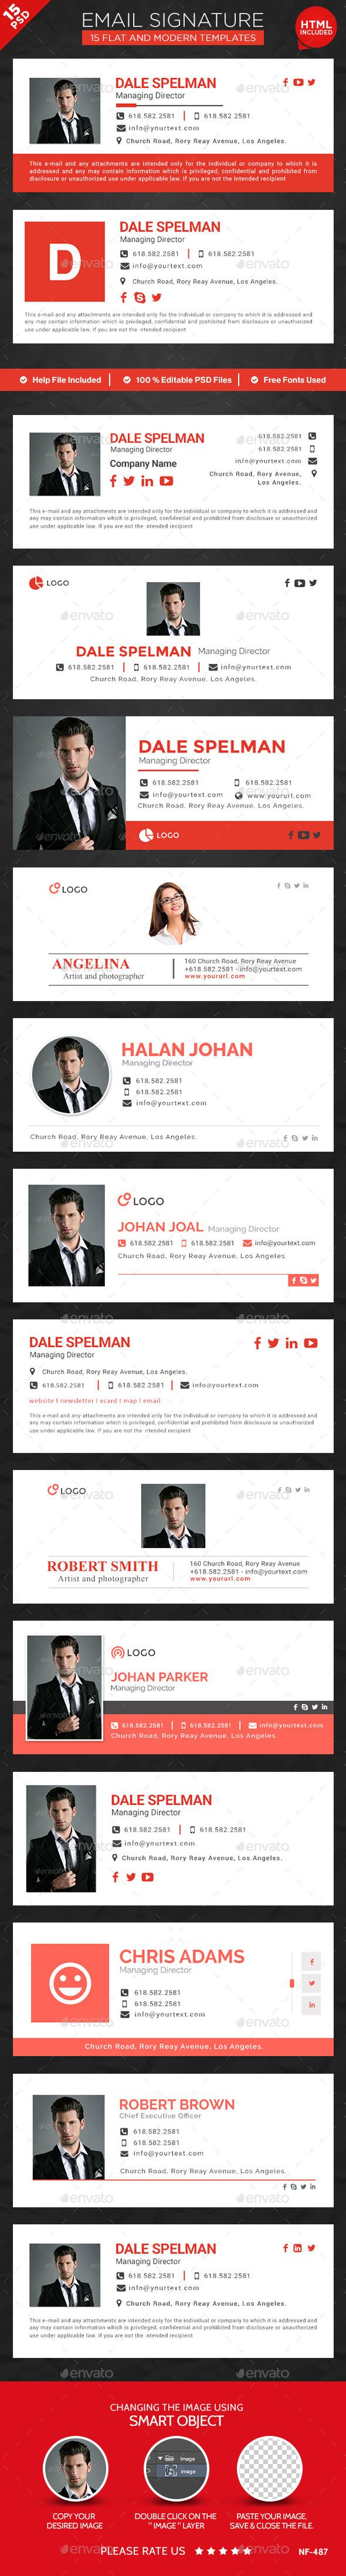 15 Email Signature Templates - HTML Files Included